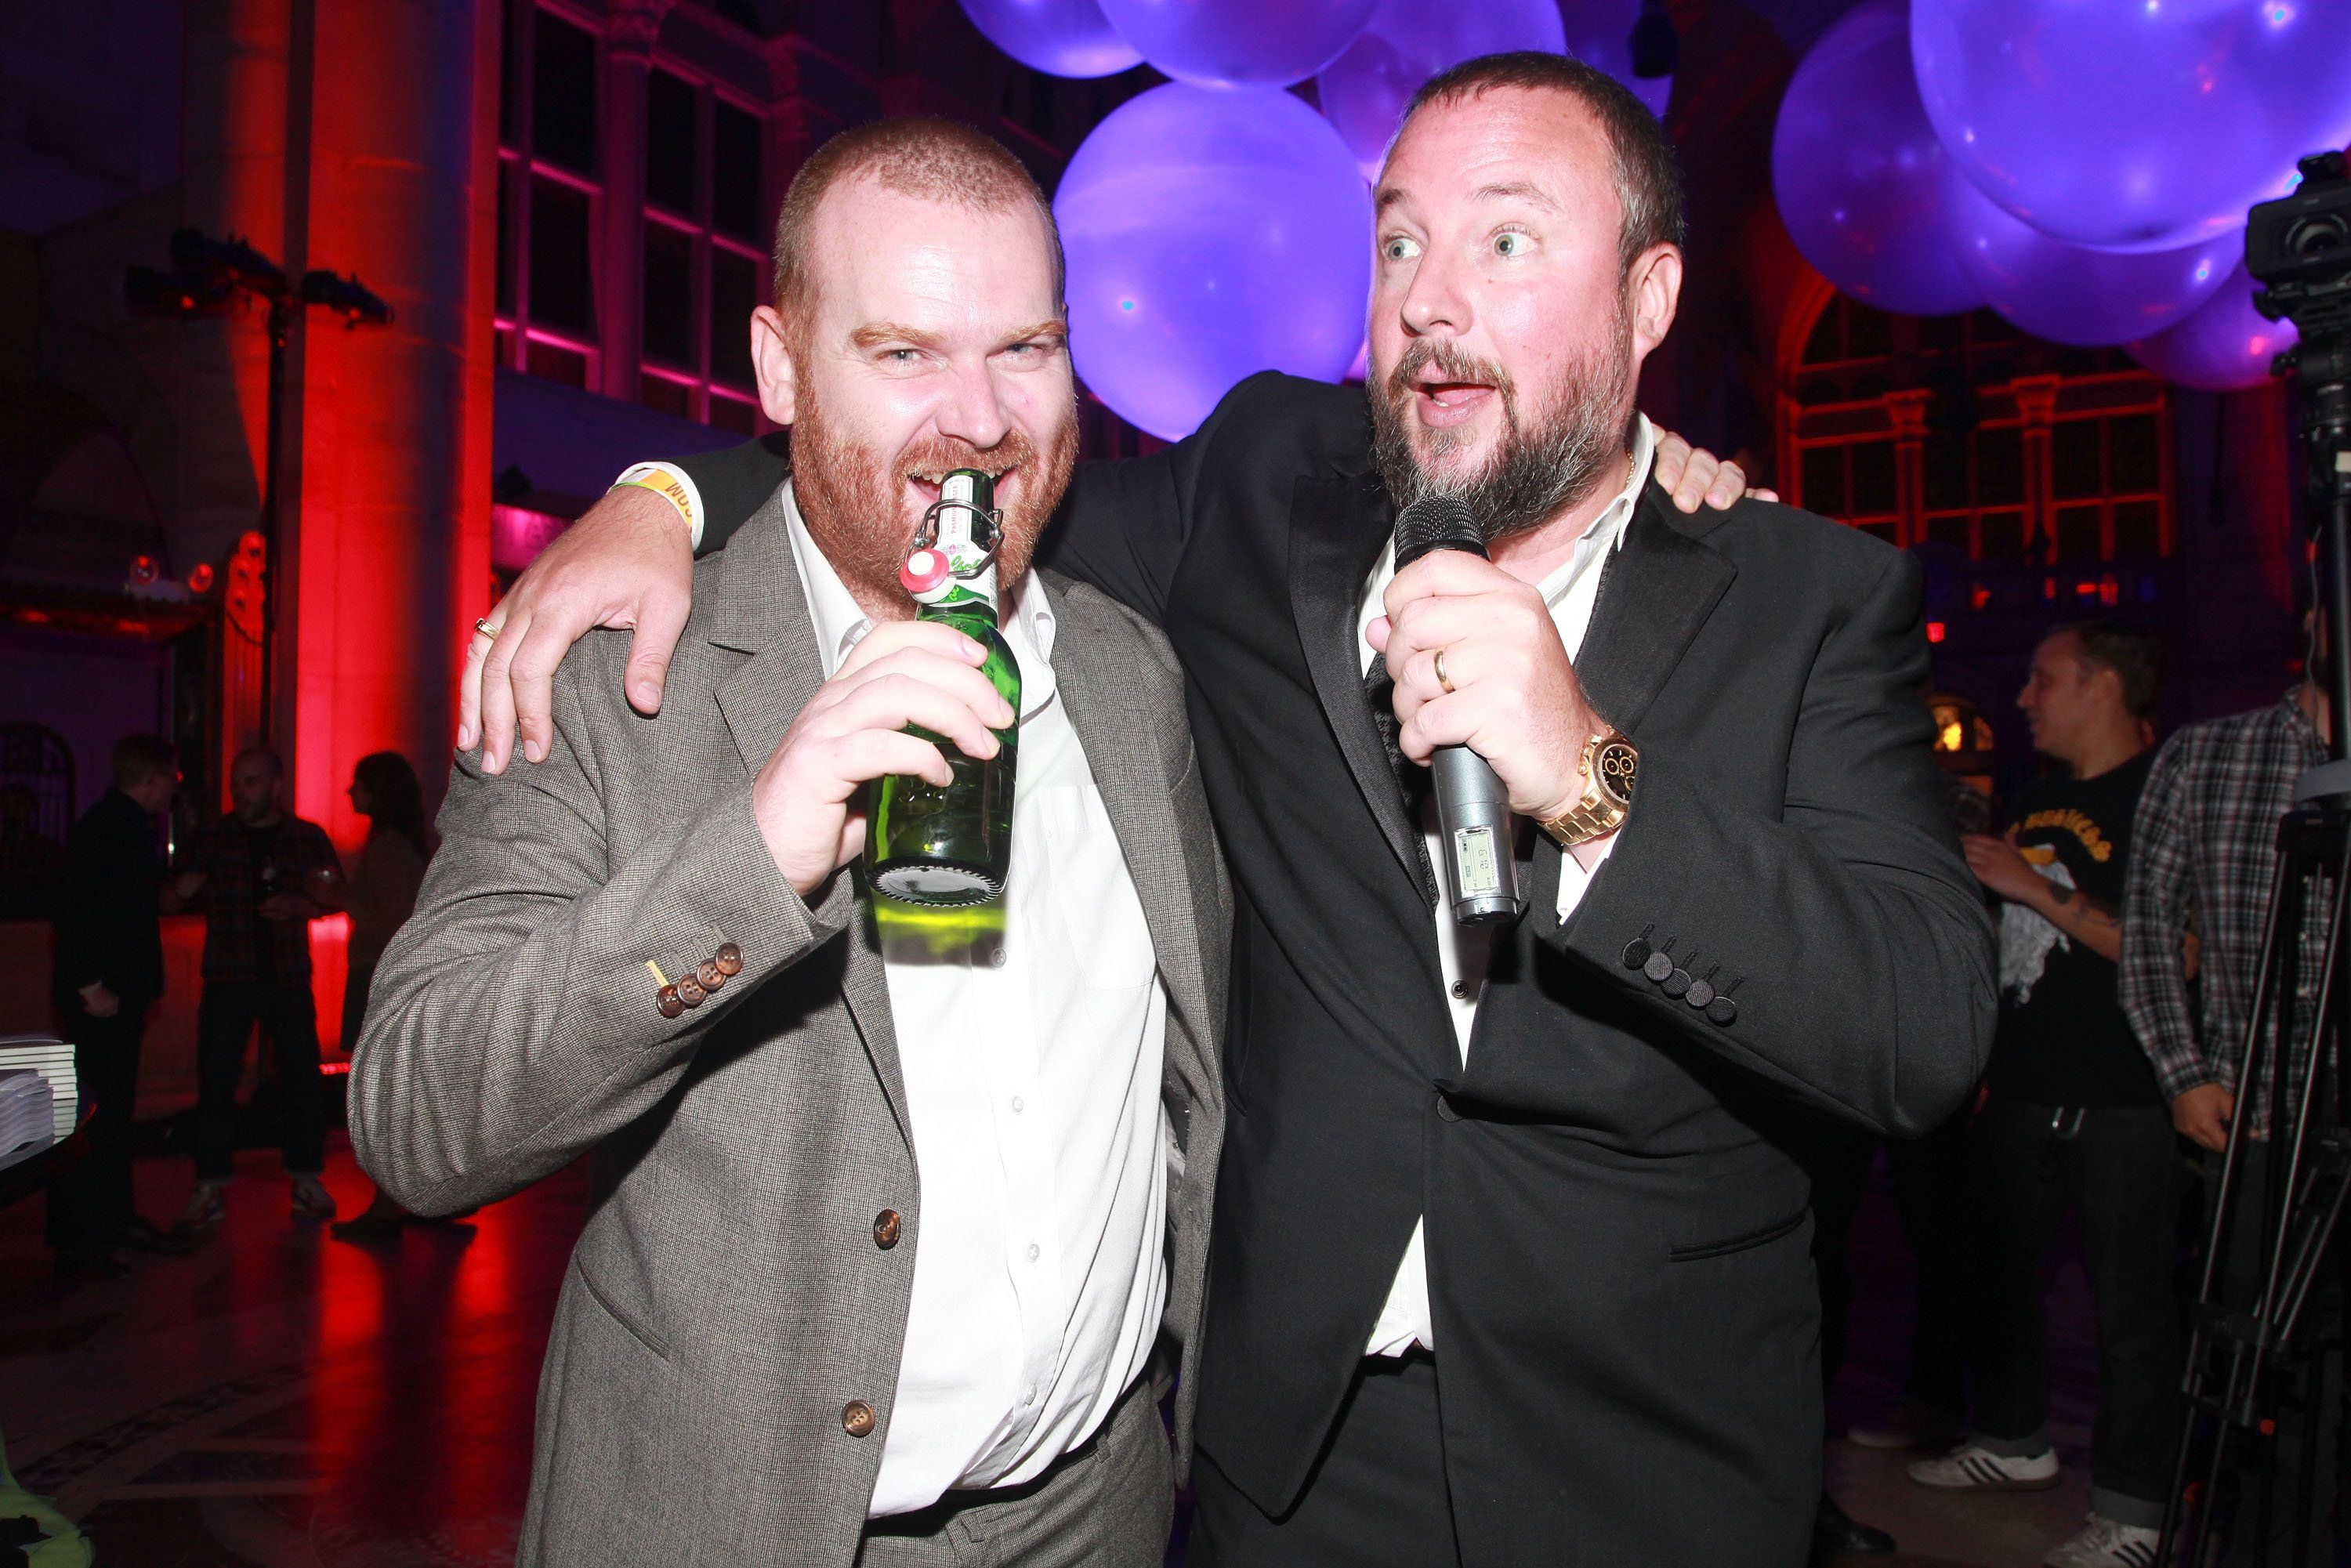 Andrew Creighton, left, with Vice founder Shane Smith in 2011.